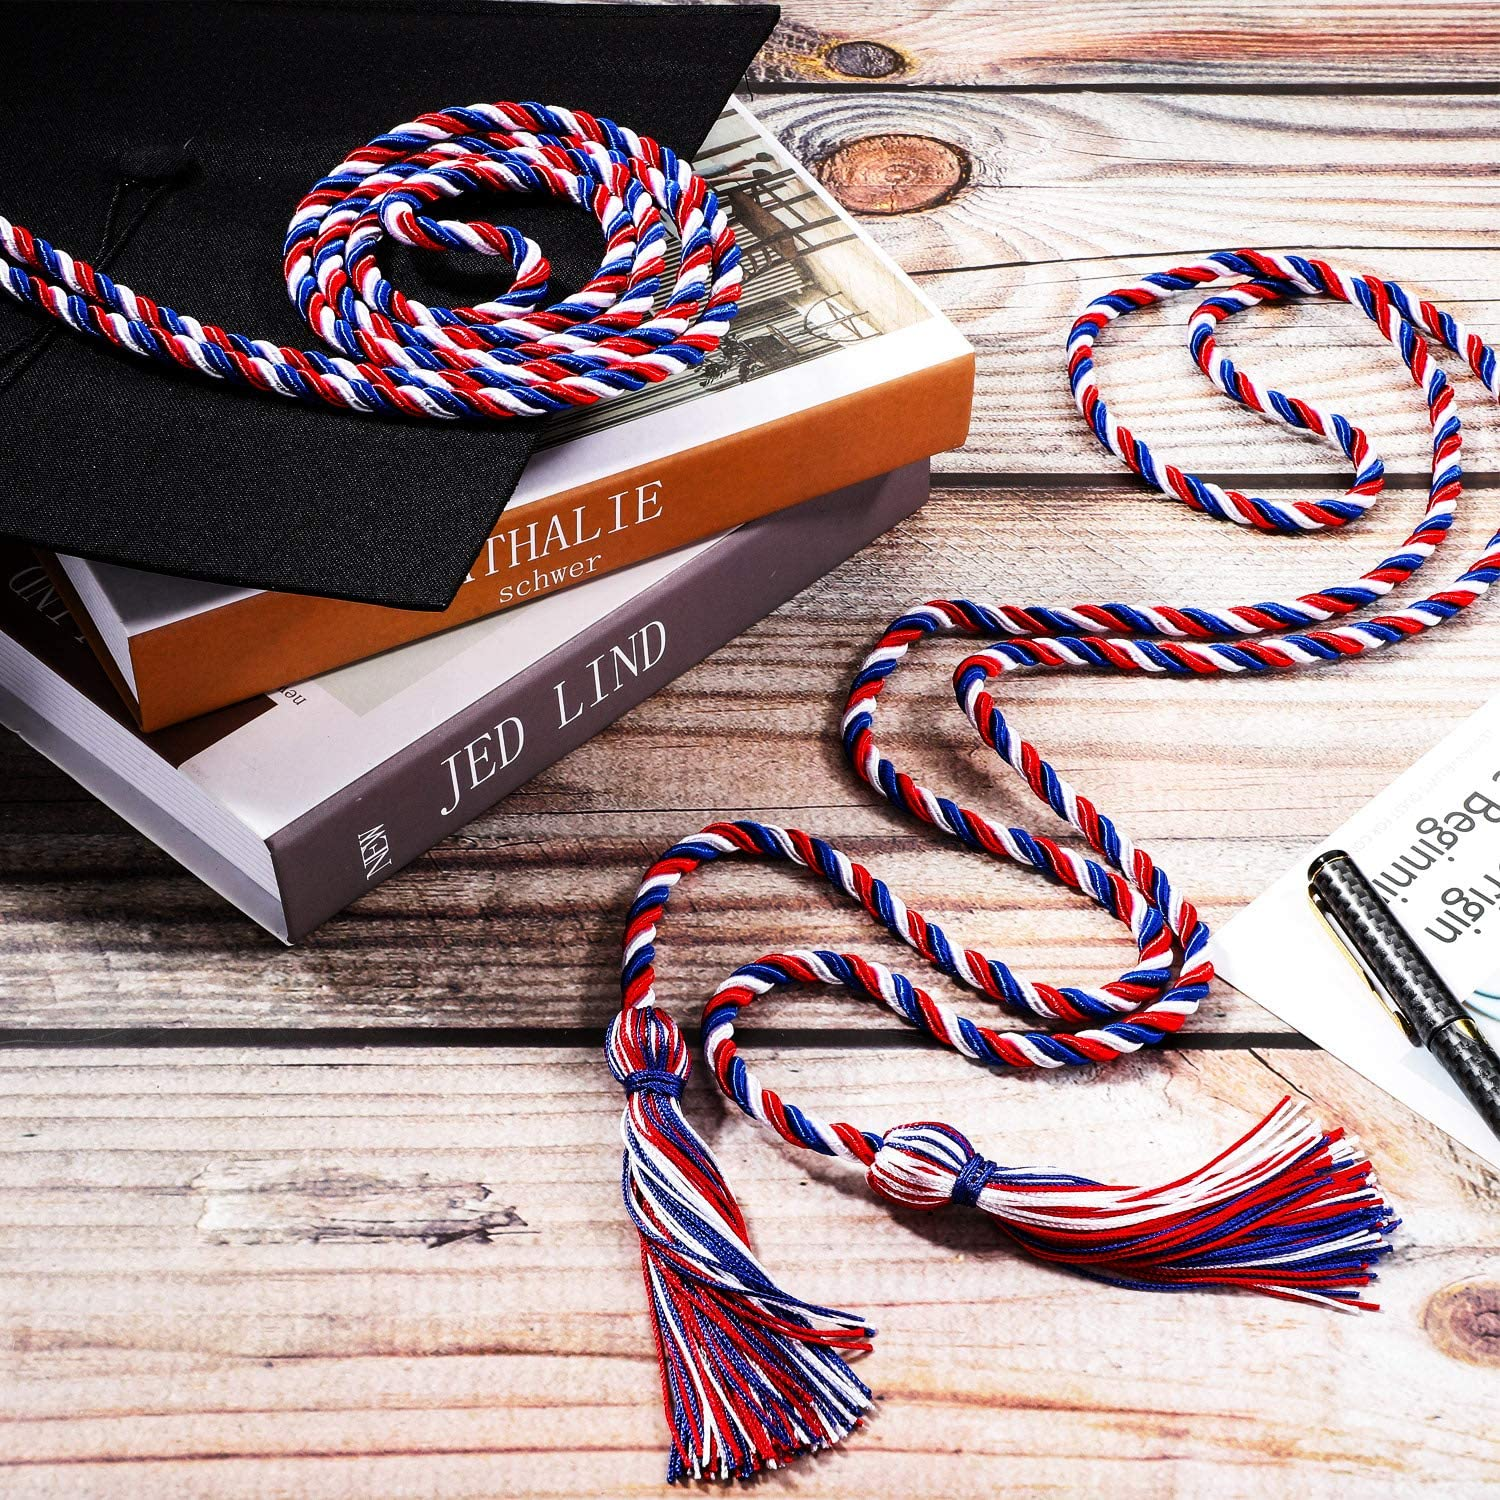 Mixed Dark Blue, Red and White 6 Pieces Honor Cord Graduation Cord with Tassel Braided Grad Days Honor Cords for School Graduation Ceremony Party